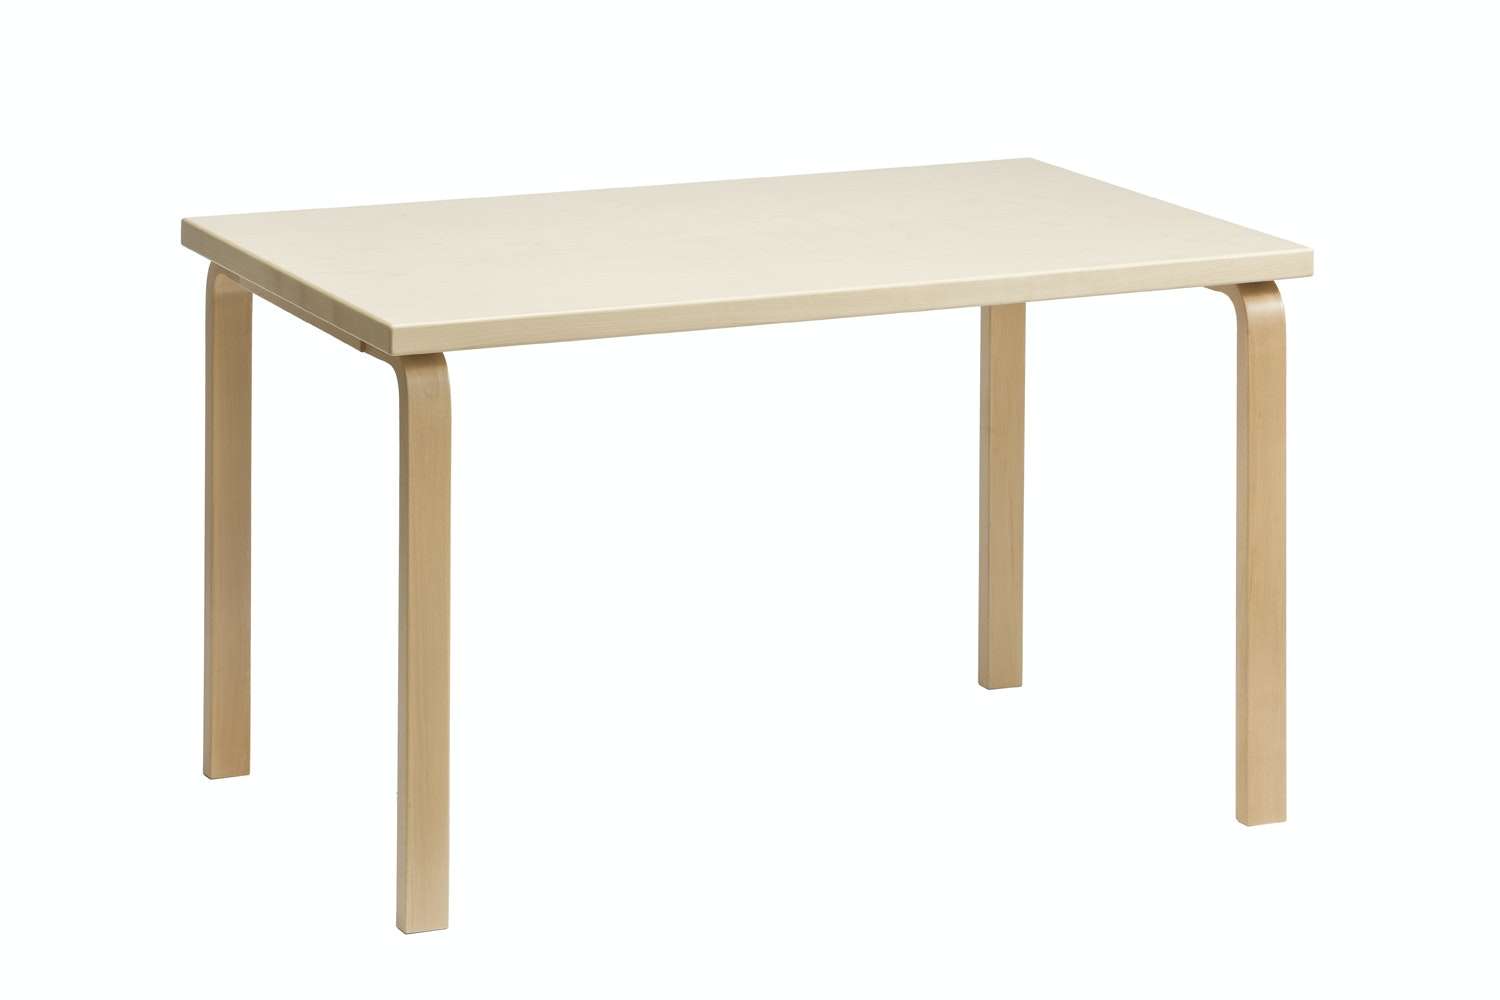 81B Table by Alvar Aalto for Artek